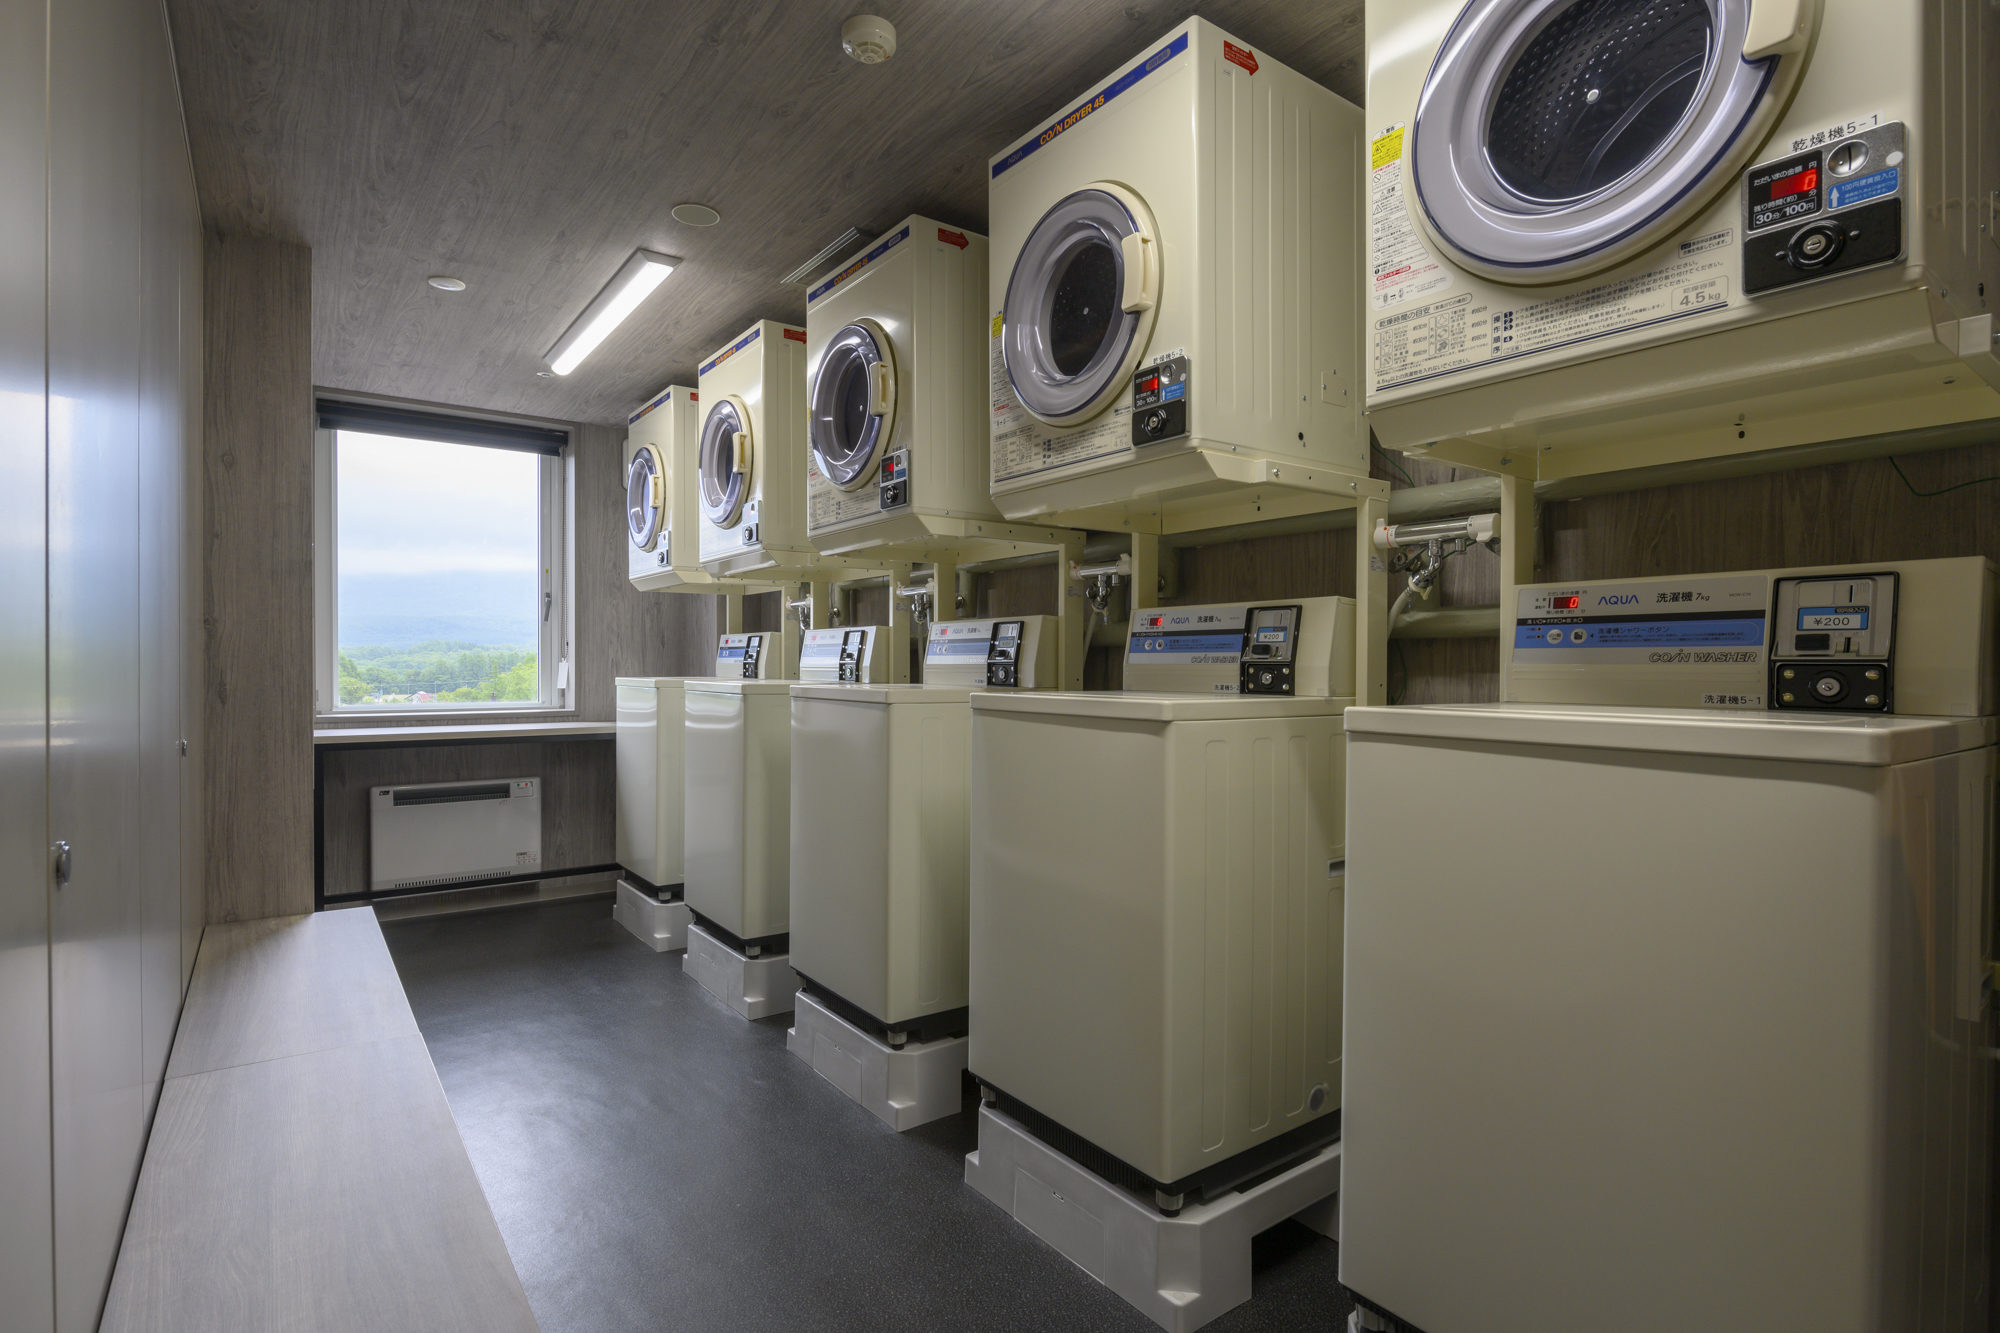 Midtown Niseko - Laundry Room